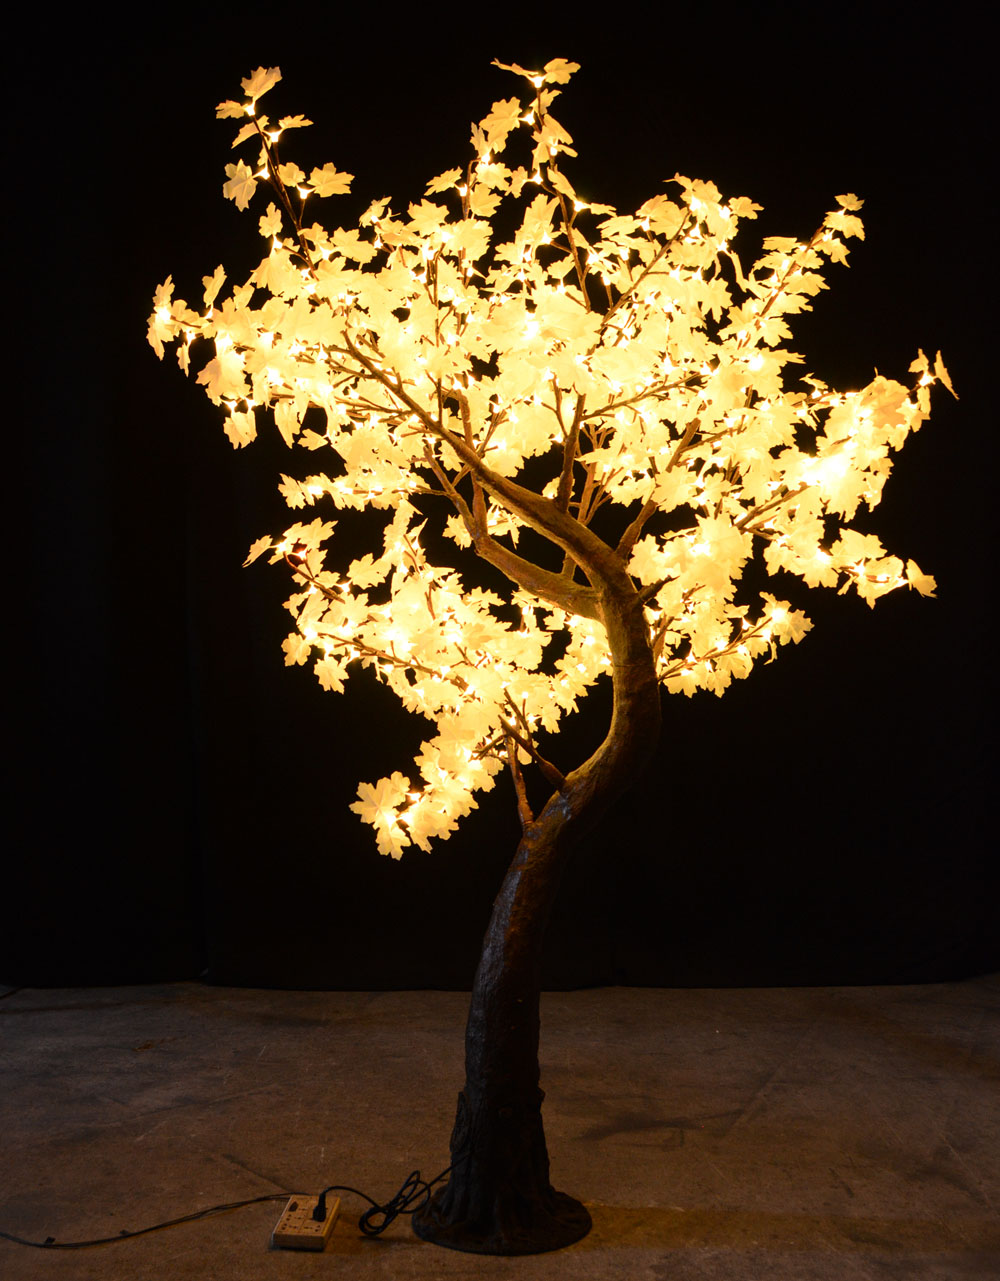 7Ft Crestone - 7' trees are ideal on a roof terrace or for framing an entrance.They are suitable for indoors and out.  The trees can be dimmed if desired with a dimmer switch.The tree is 7feet tall and 5.5feet in diameter.  It has 480 LEDS on 10 branches and is only 26 watts.